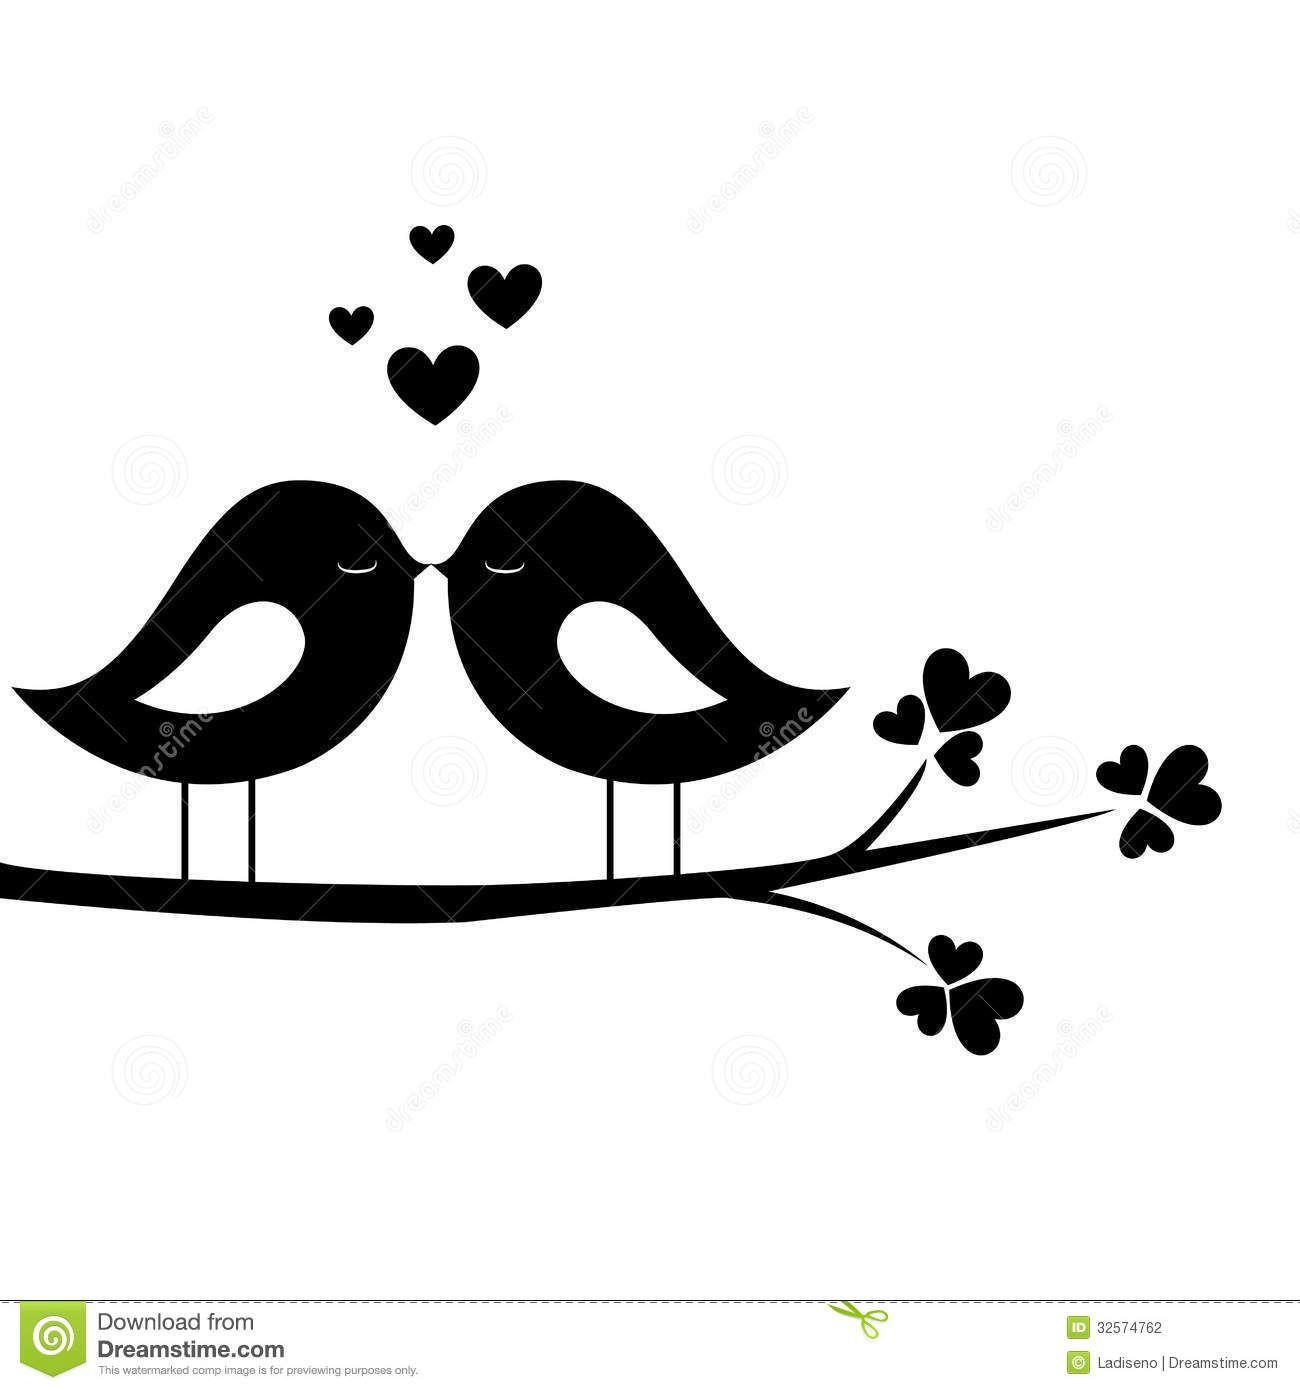 Love Birds Clipart Black - ClipartFest-Love birds clipart black - ClipartFest-11